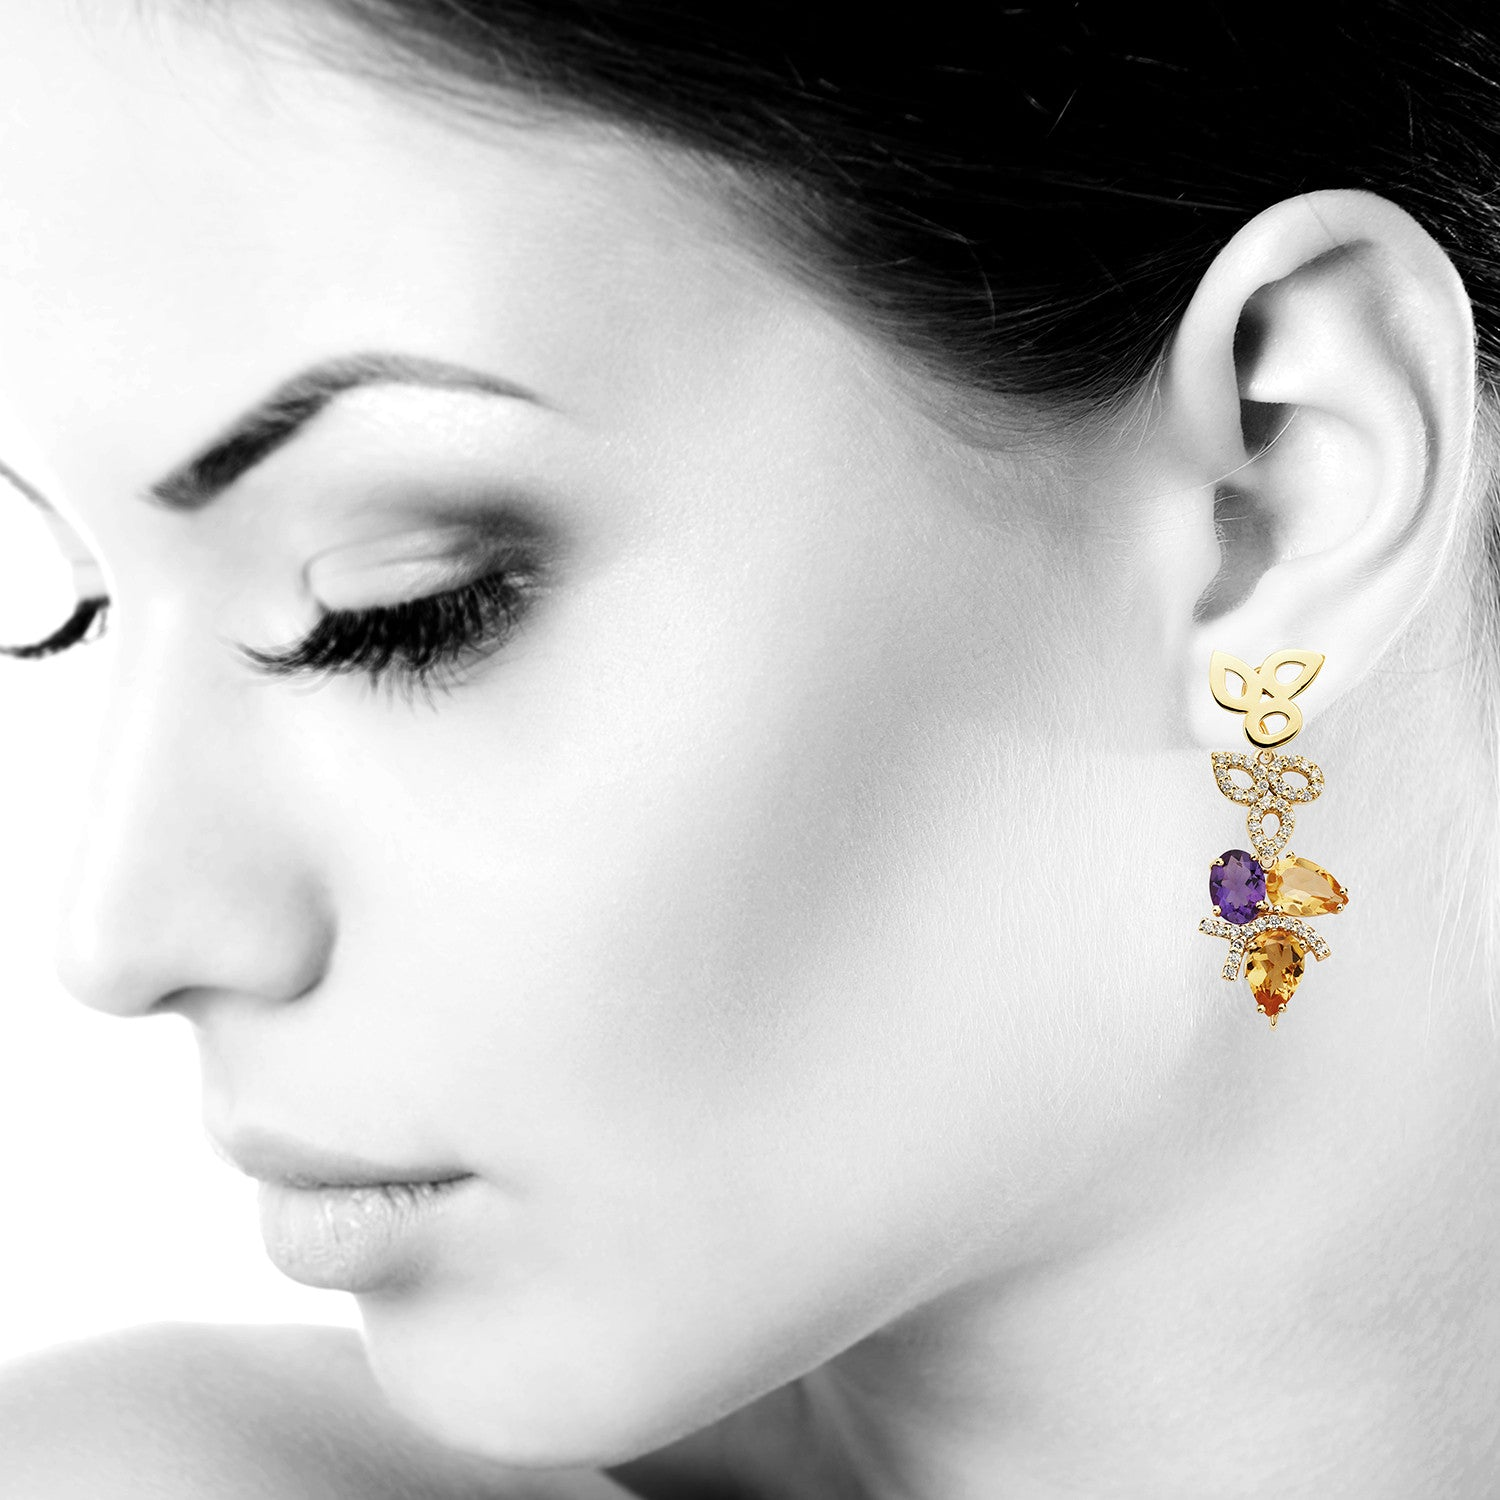 cartilage ear an serendipity earrings triple stud flower products earring piercing helix in curved